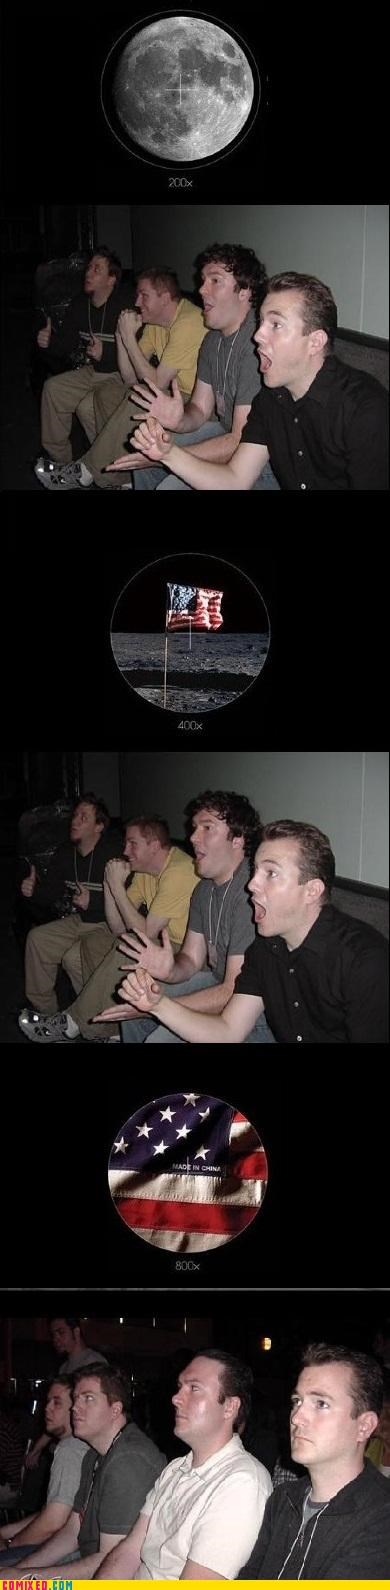 China,conspiracy,history,politics,reaction guys,space,usa-1